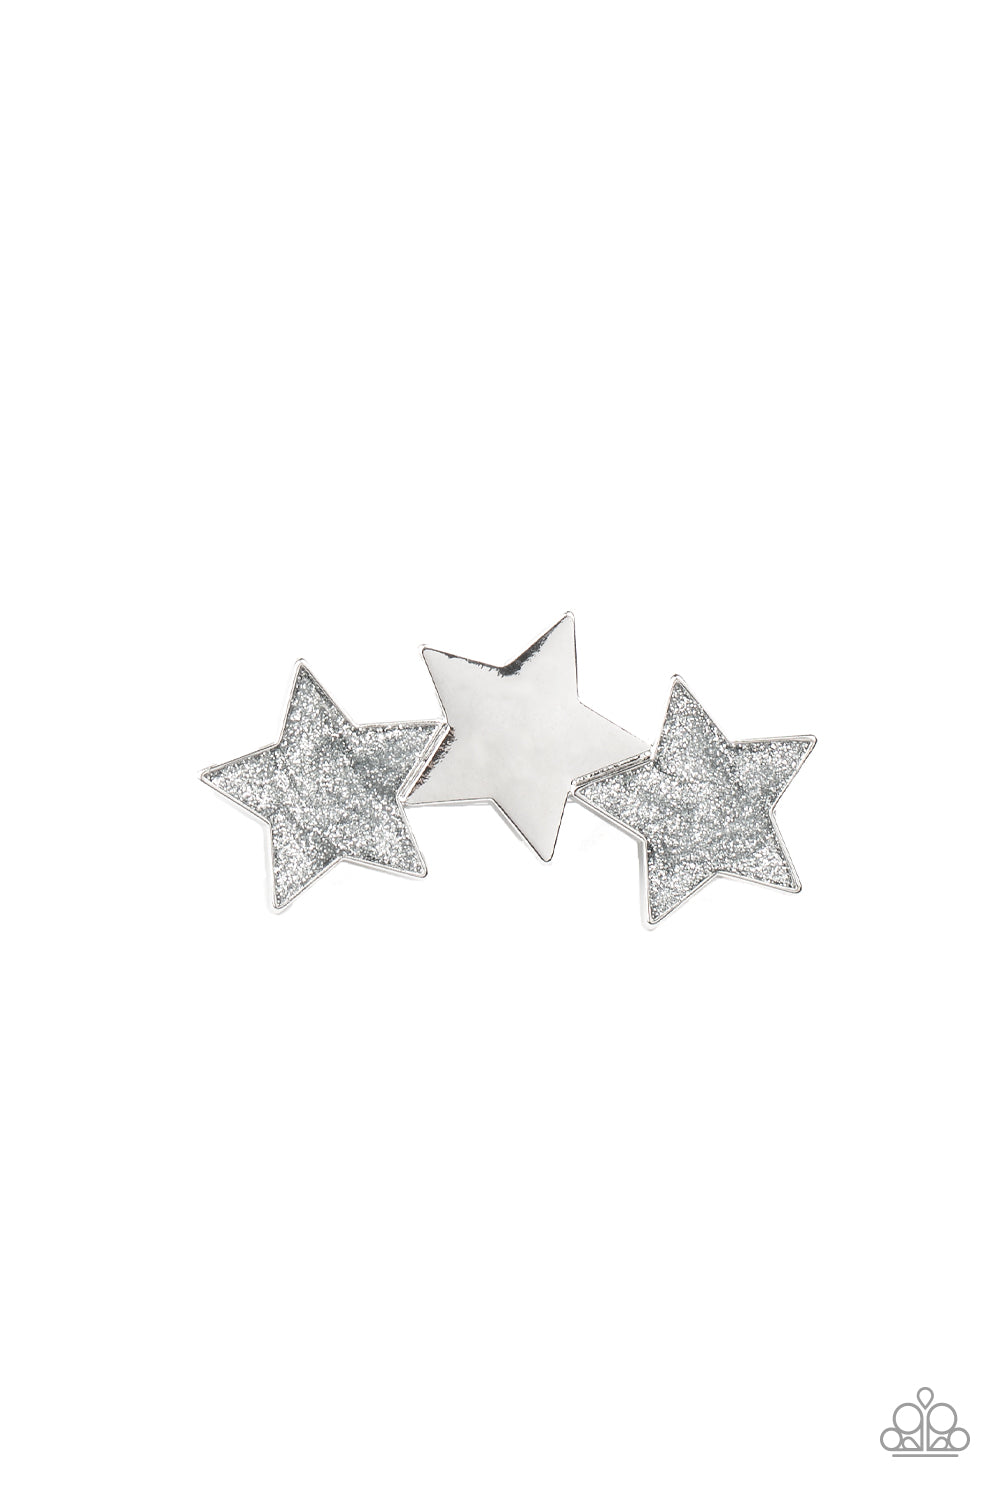 Dont Get Me STAR-ted!- Silver Hair Clip Paparazzi Accessories New